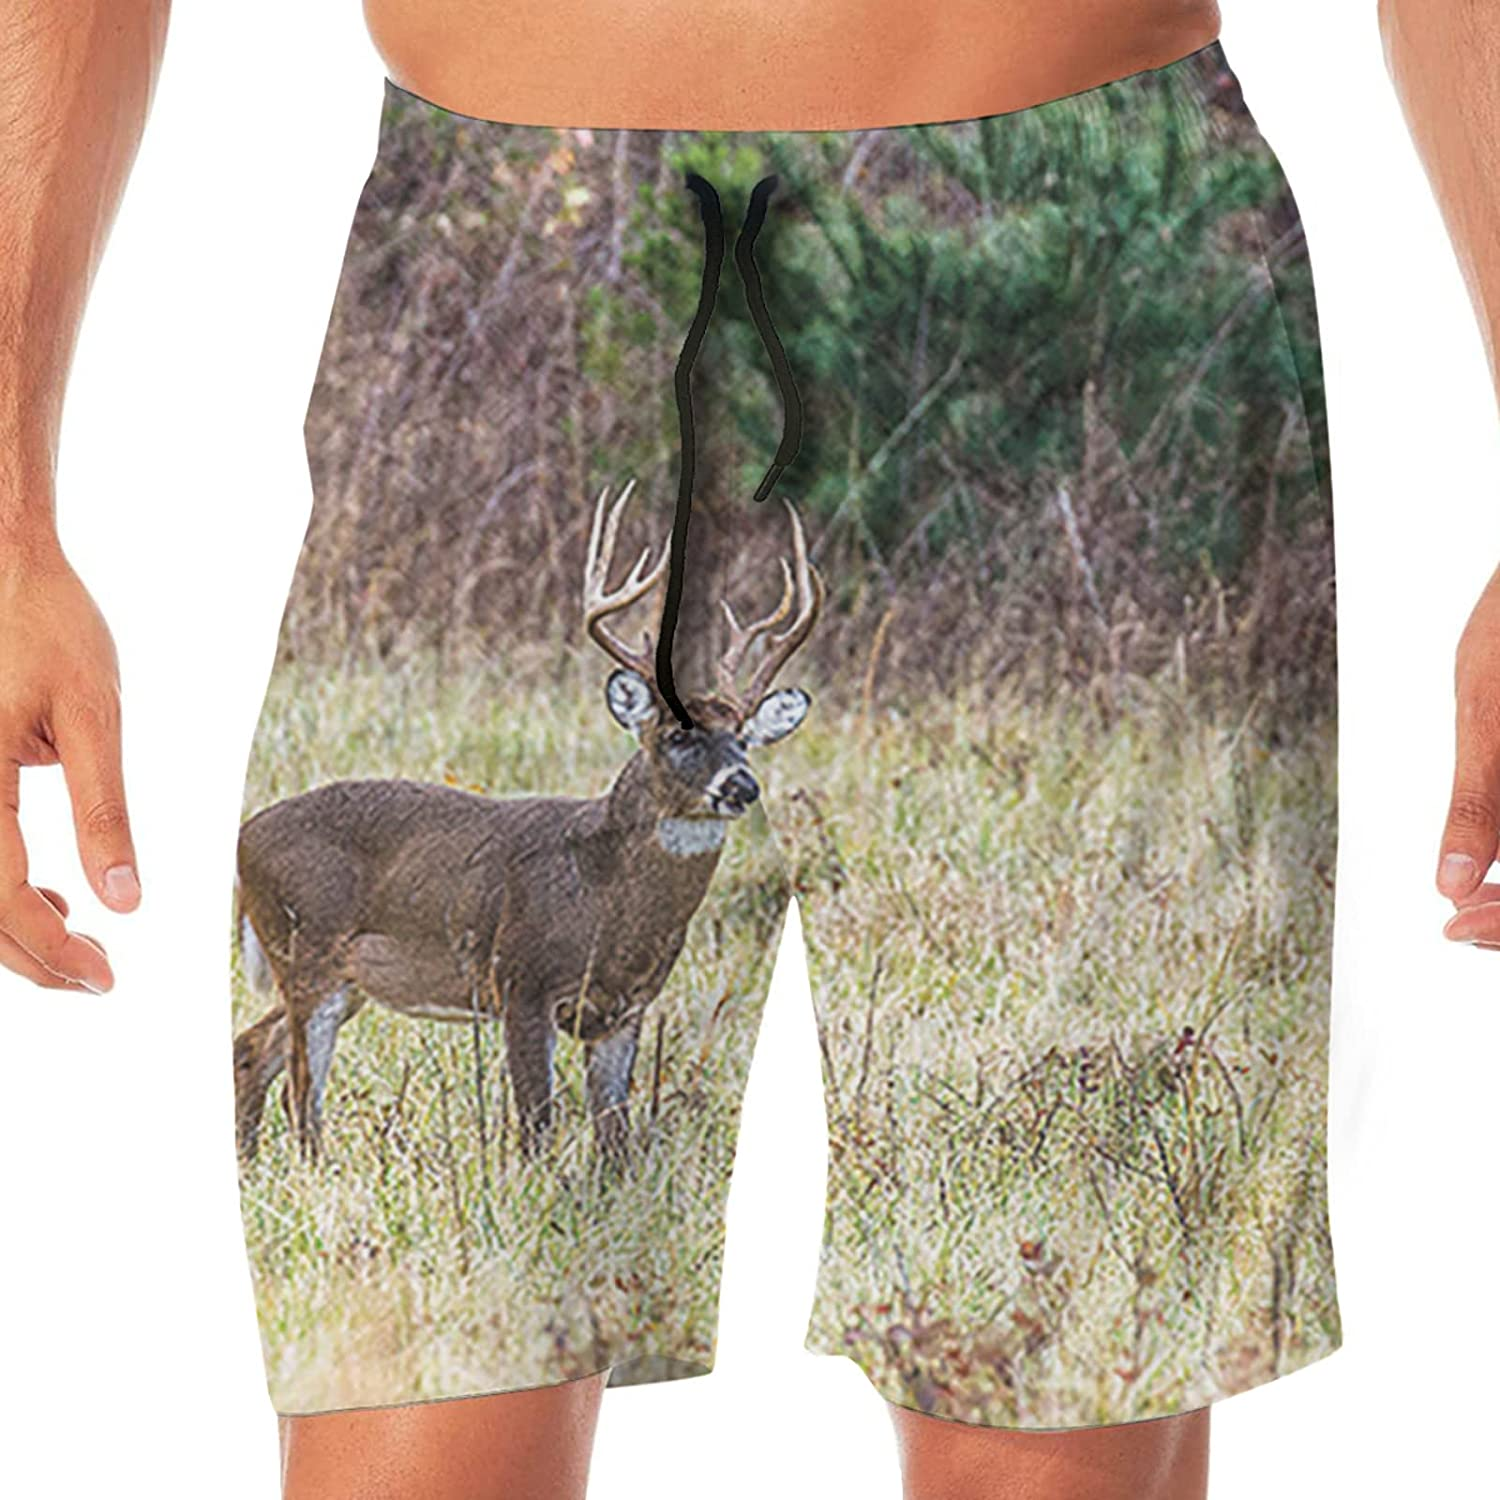 PEKIVIDE Mens 3D Printed Whitetail Drop A Lonely Deer in Woods Swim Trunks Quick Dry Summer Surf Board Shorts Swimwear Pants